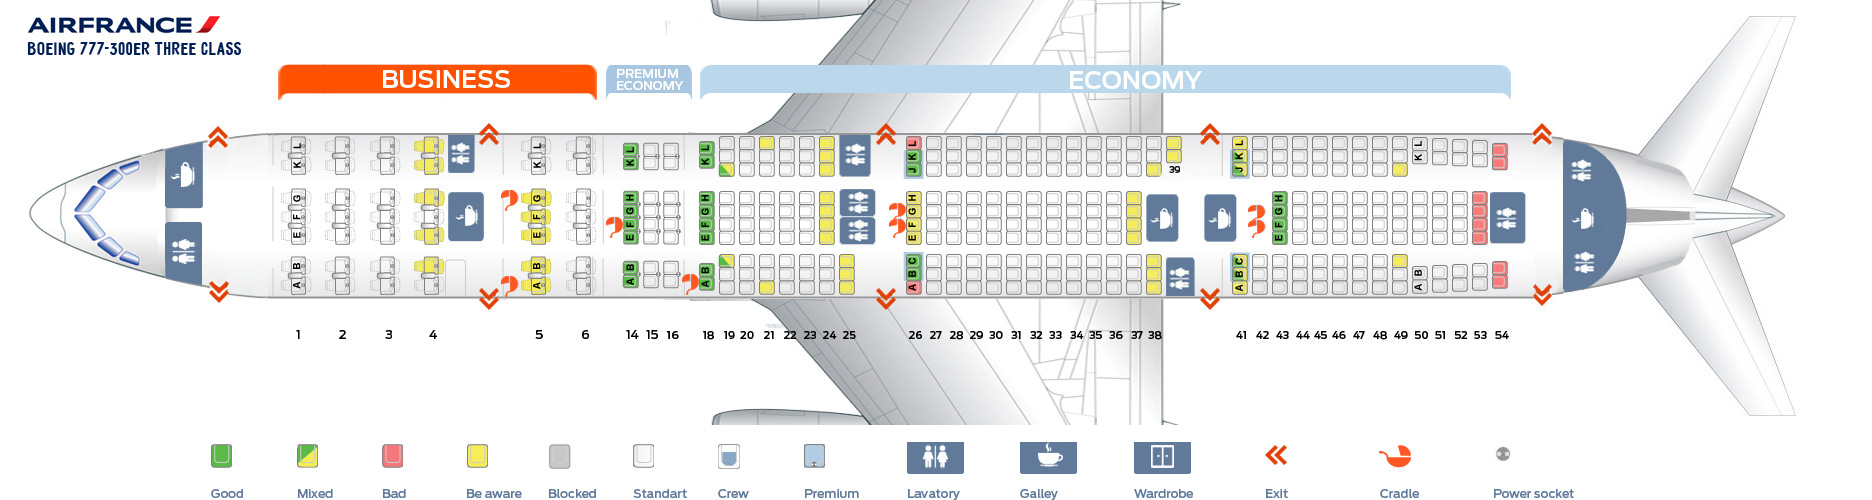 Seat Map Boeing 777-300 ER Three Class Air France